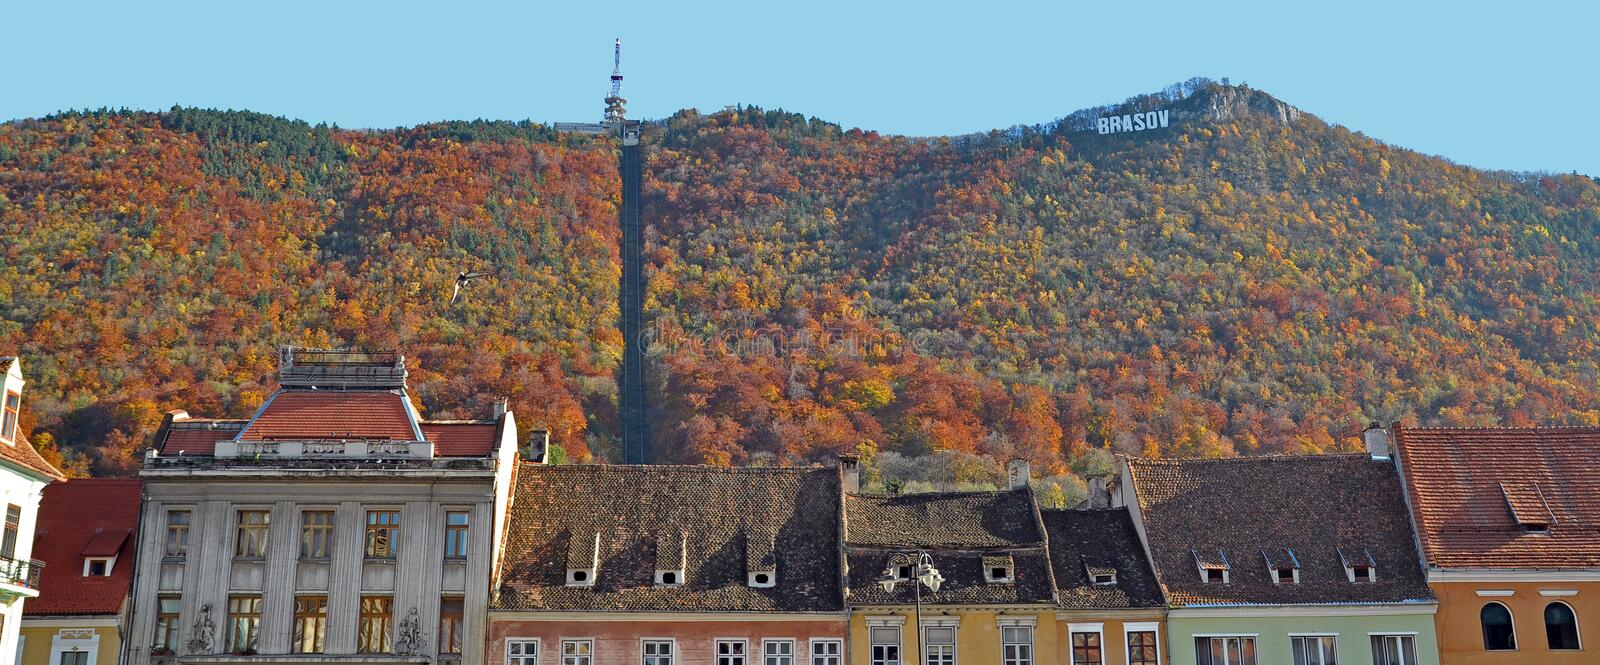 Brasov cityscape in the fall stock image